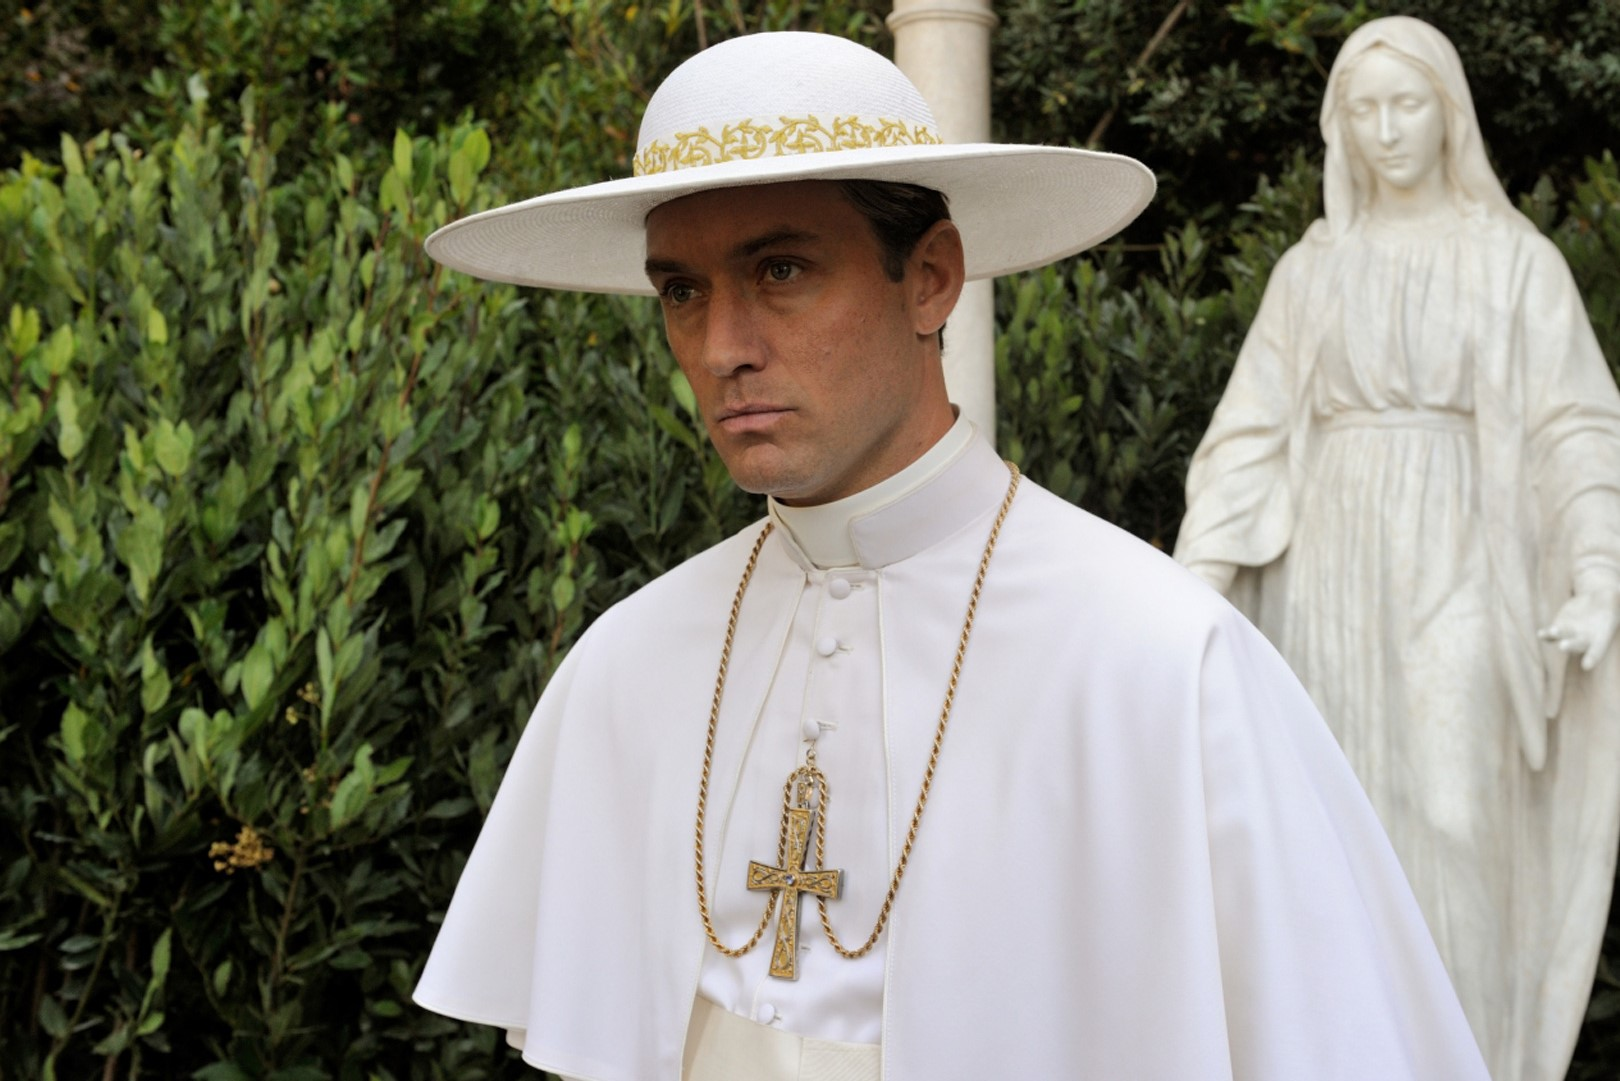 (Pius XIII in The Young Pope, Source: HBO show website, Fair Use).